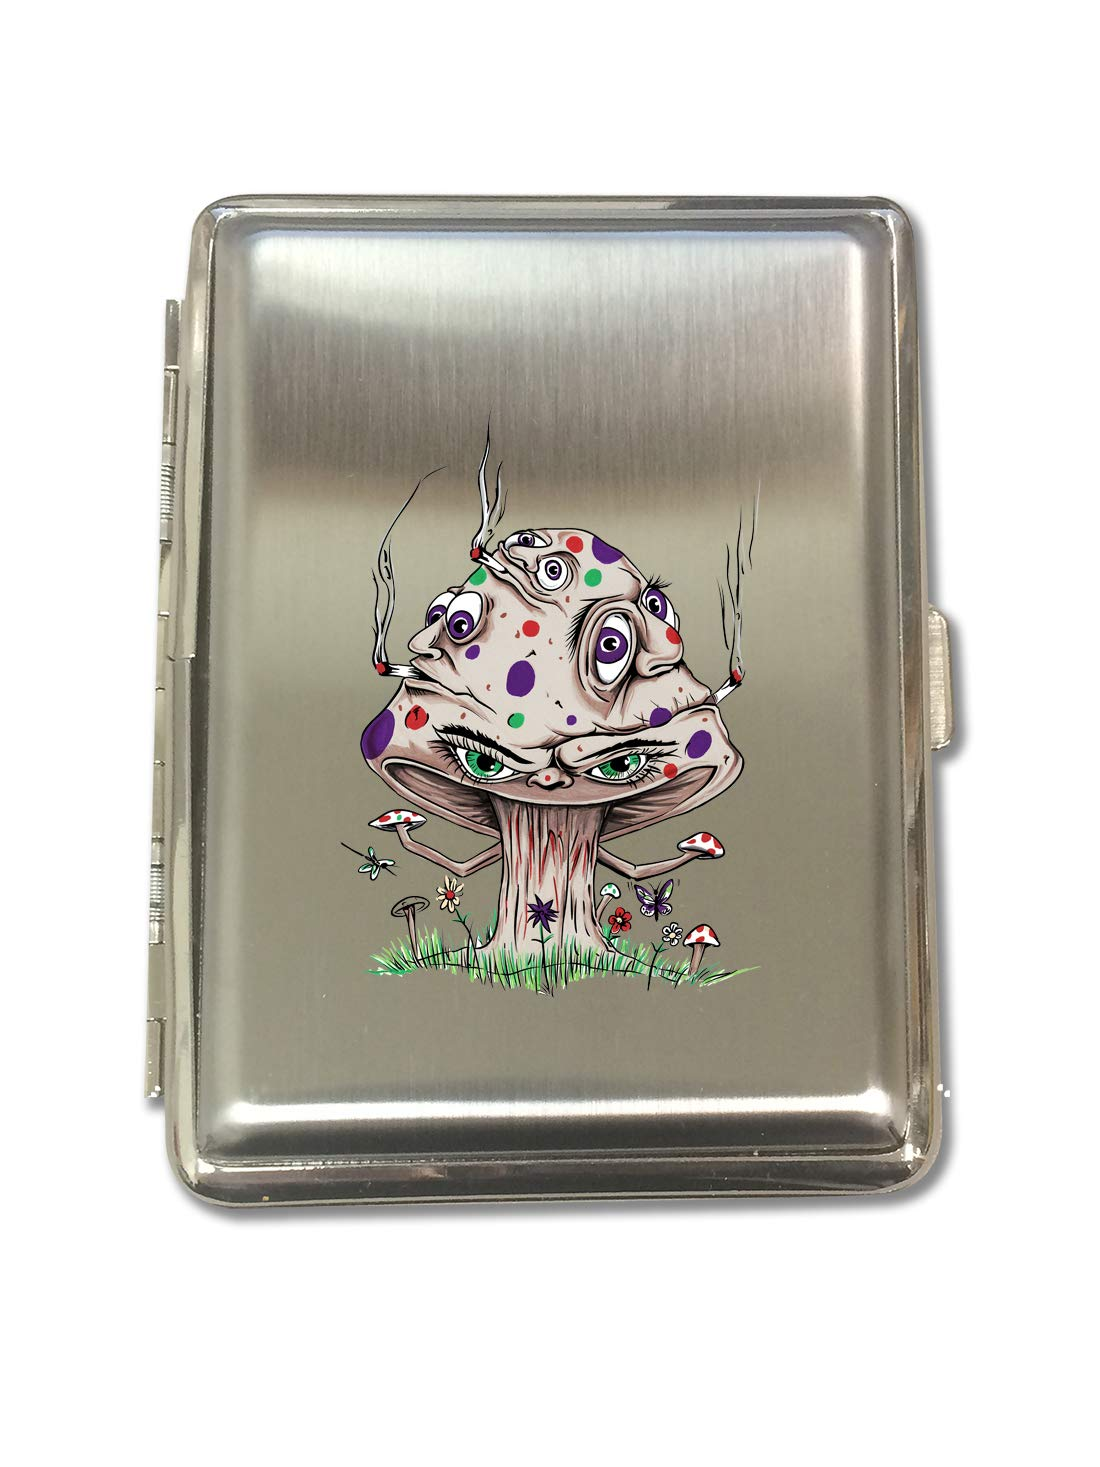 High Mushroom Funny Shroom Smoking Joint Cartoon - Metal Kings Size Cigarette Case Holder Brushed Chrome Slim 16 Cigs Design Spring - Birthday, Bachelor, Party, Weddings, Gift